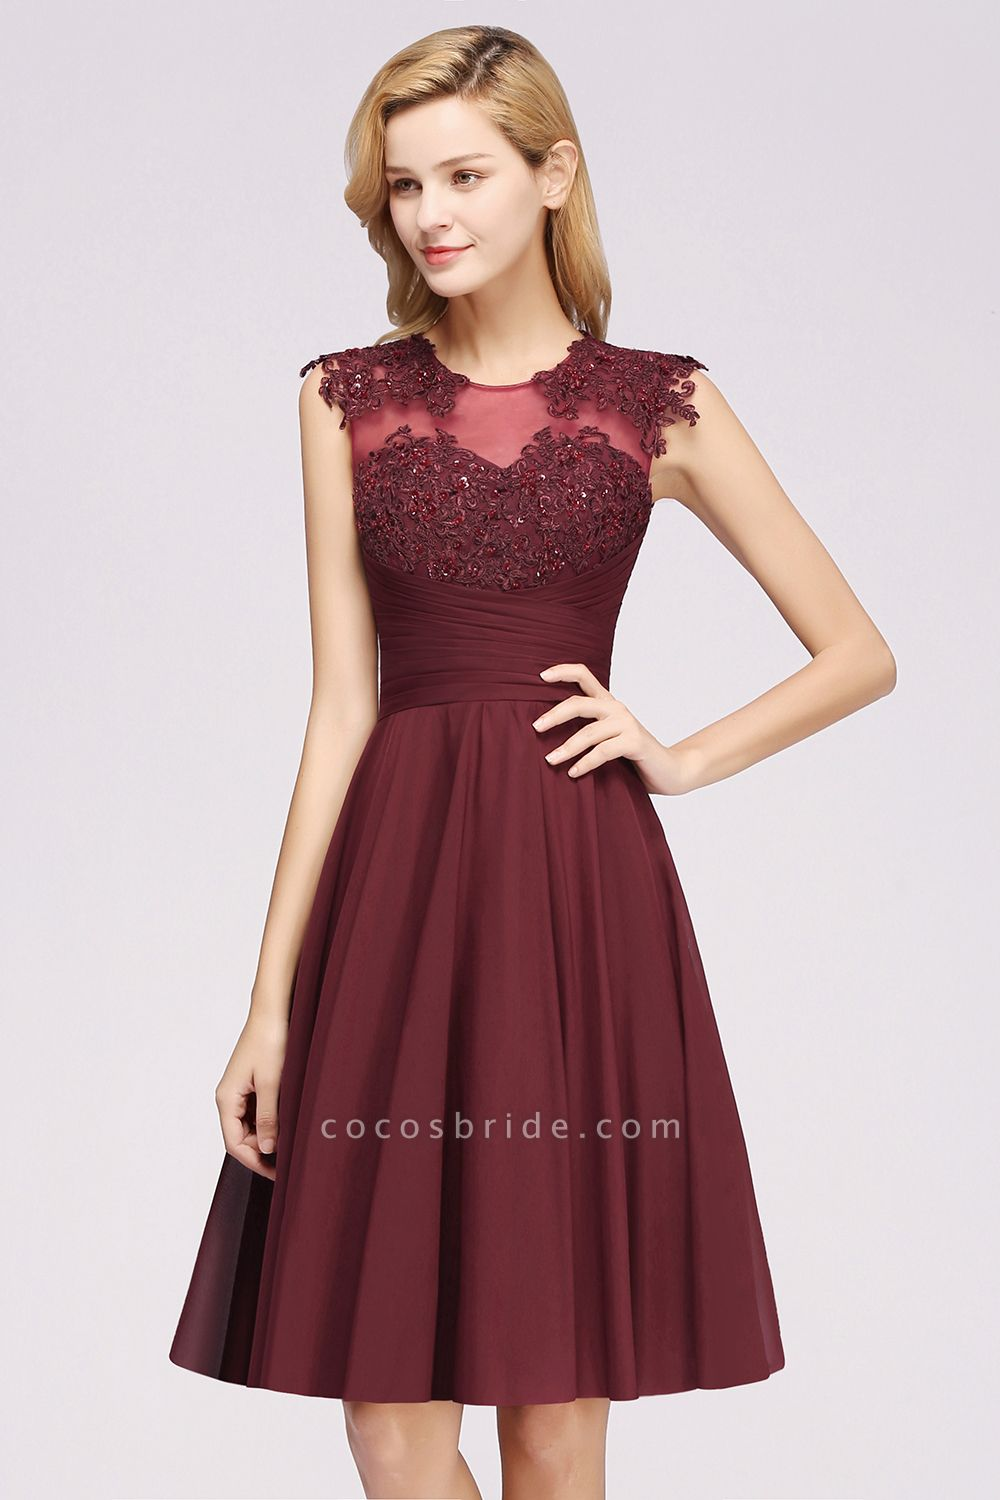 A-line Chiffon Appliques Jewel Sleeveless Knee-Length Bridesmaid Dresses with Ruffles